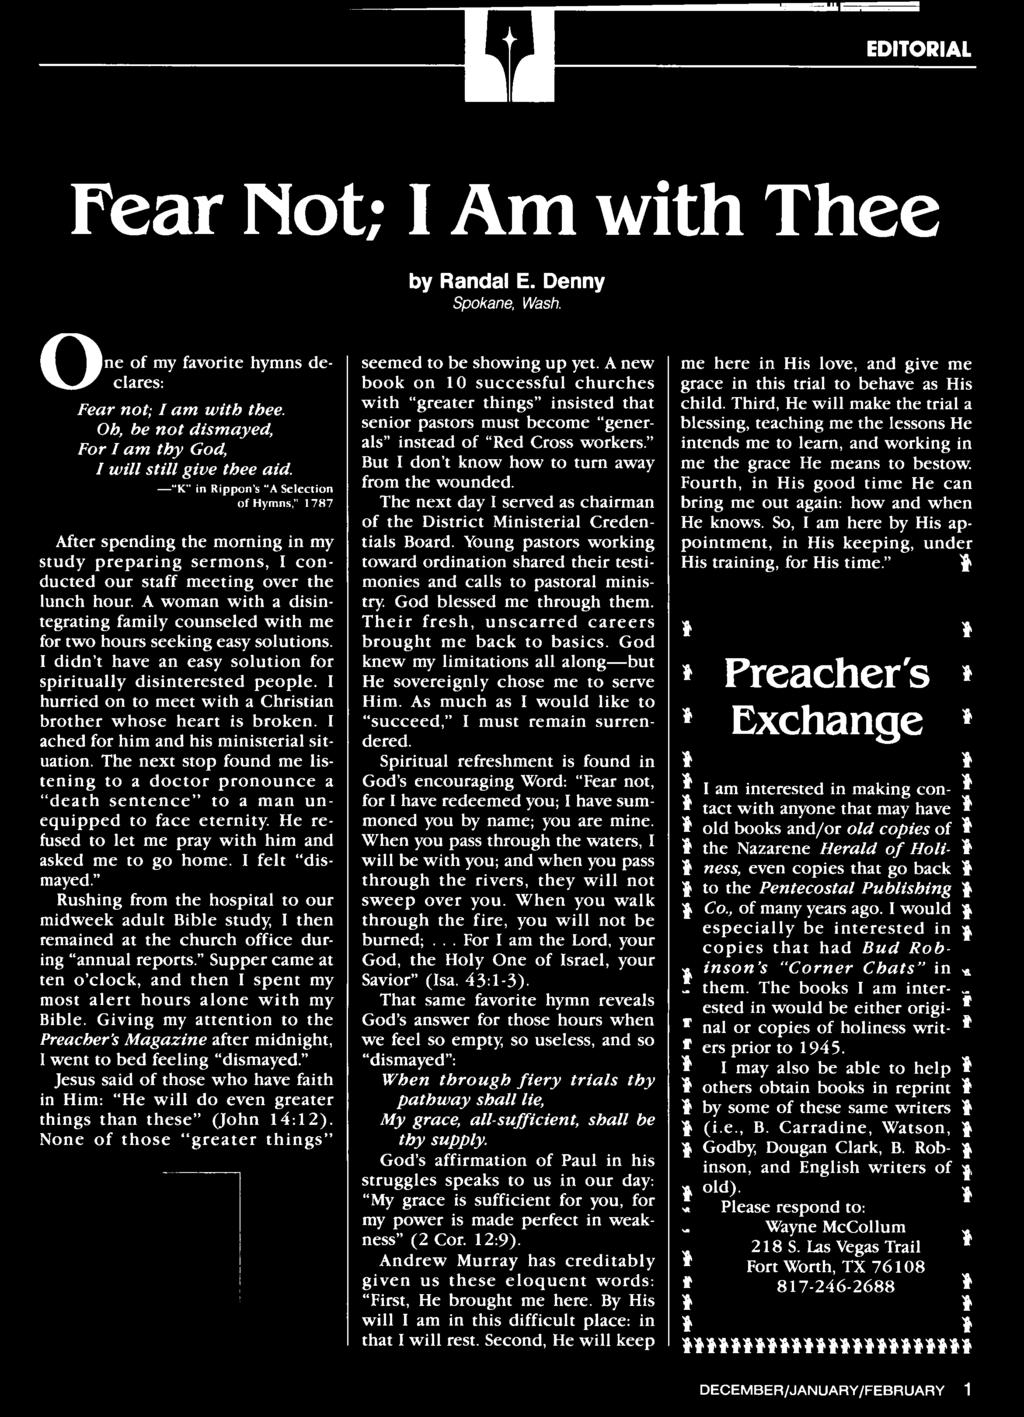 Preachers magazine volume 67 number 02 pdf the next stop found me listening to a doctor pronounce a death sentence to a man stopboris Images